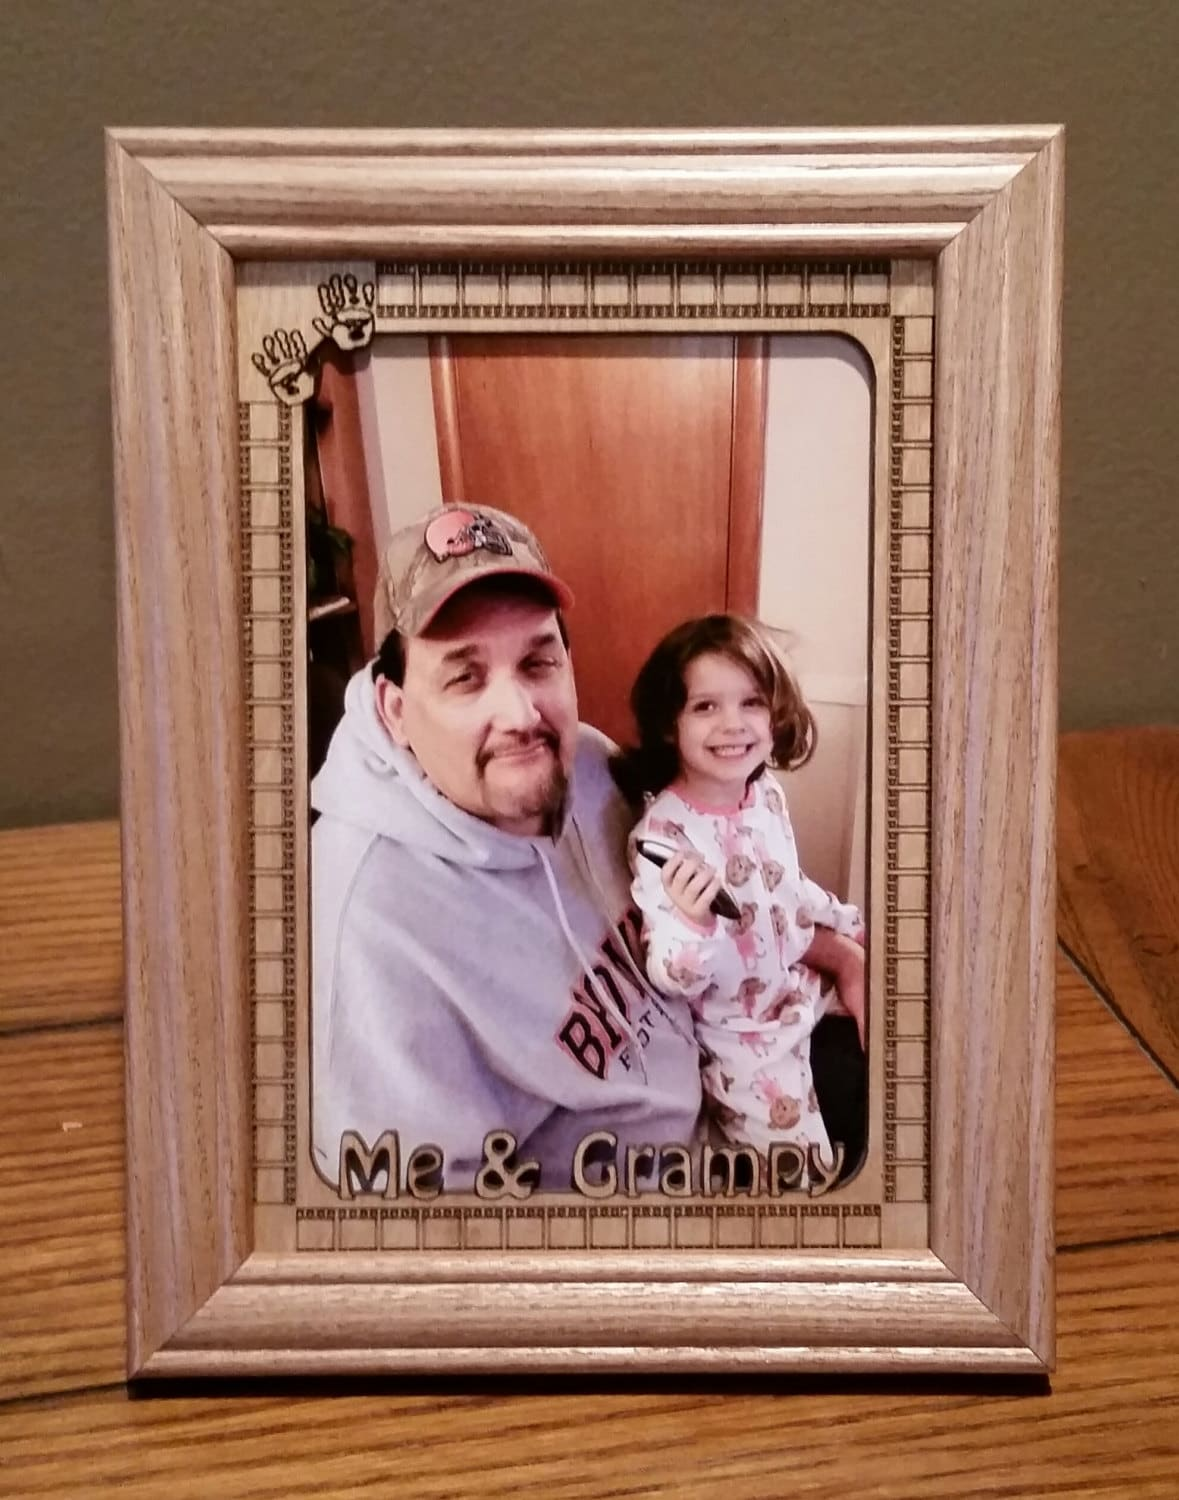 5x7 Laser Engraved Picture Frame and Matte Me and Grampy | Etsy